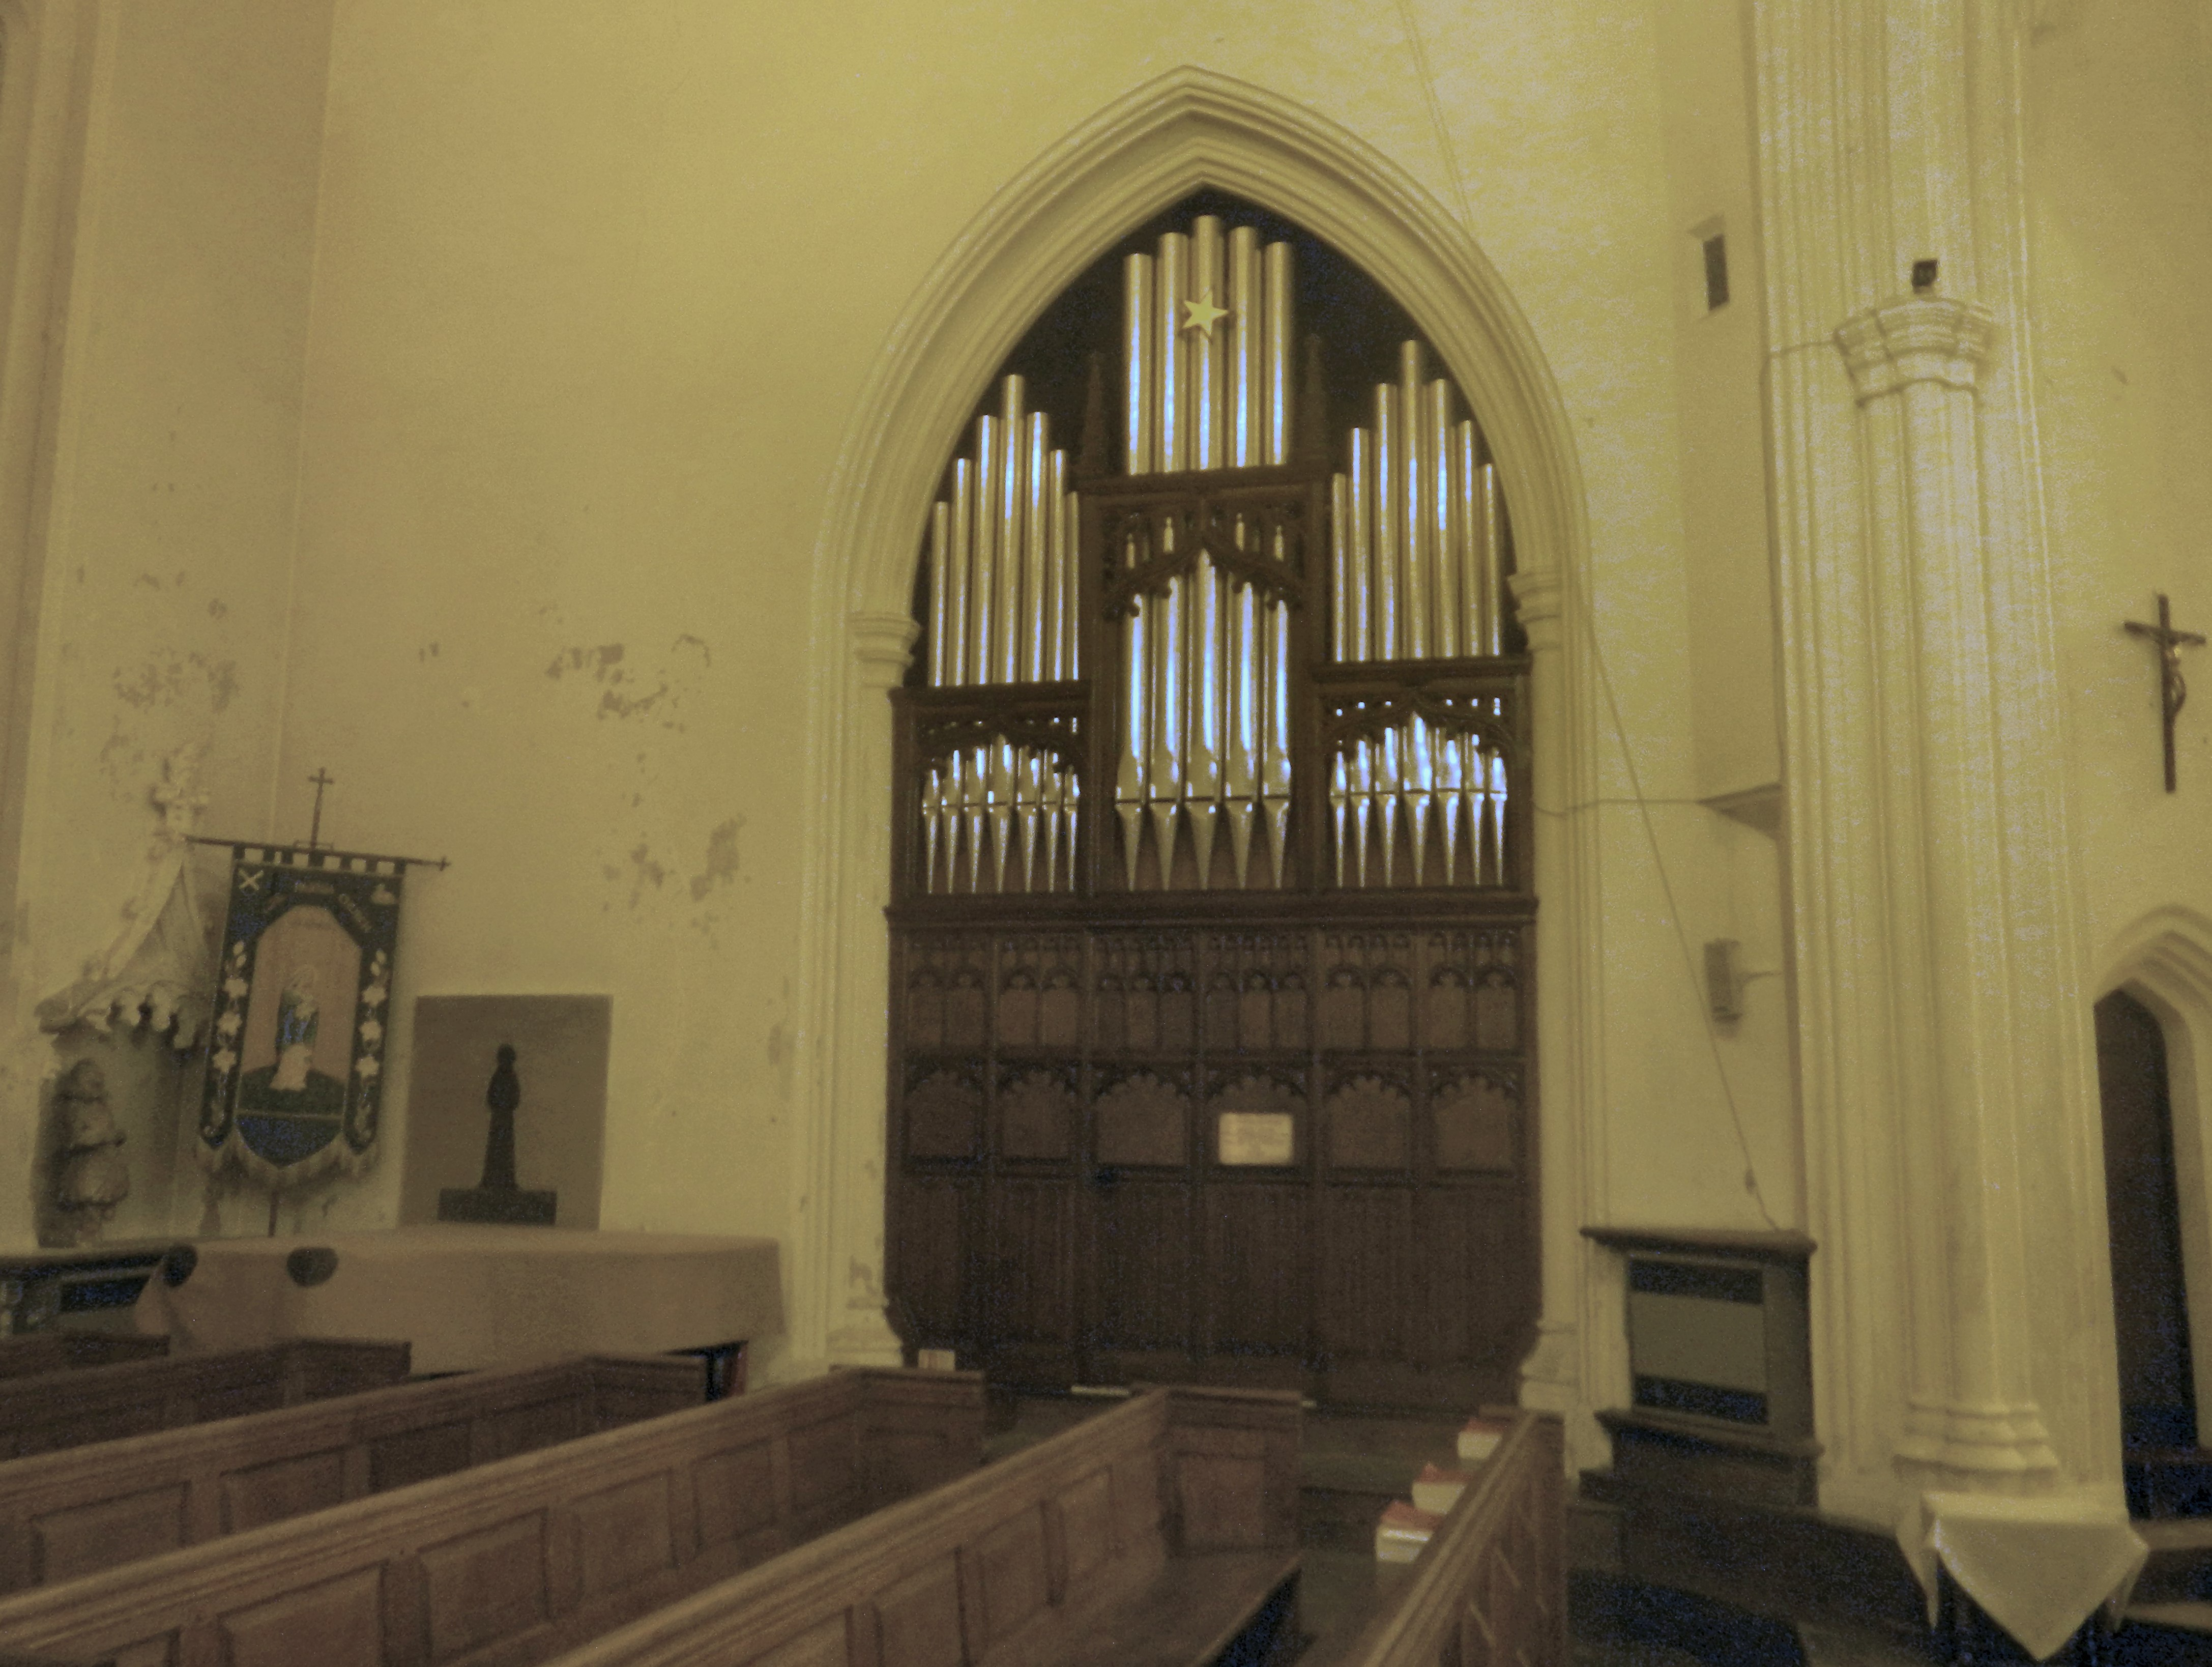 Image: The organ at St Mary's, Ware